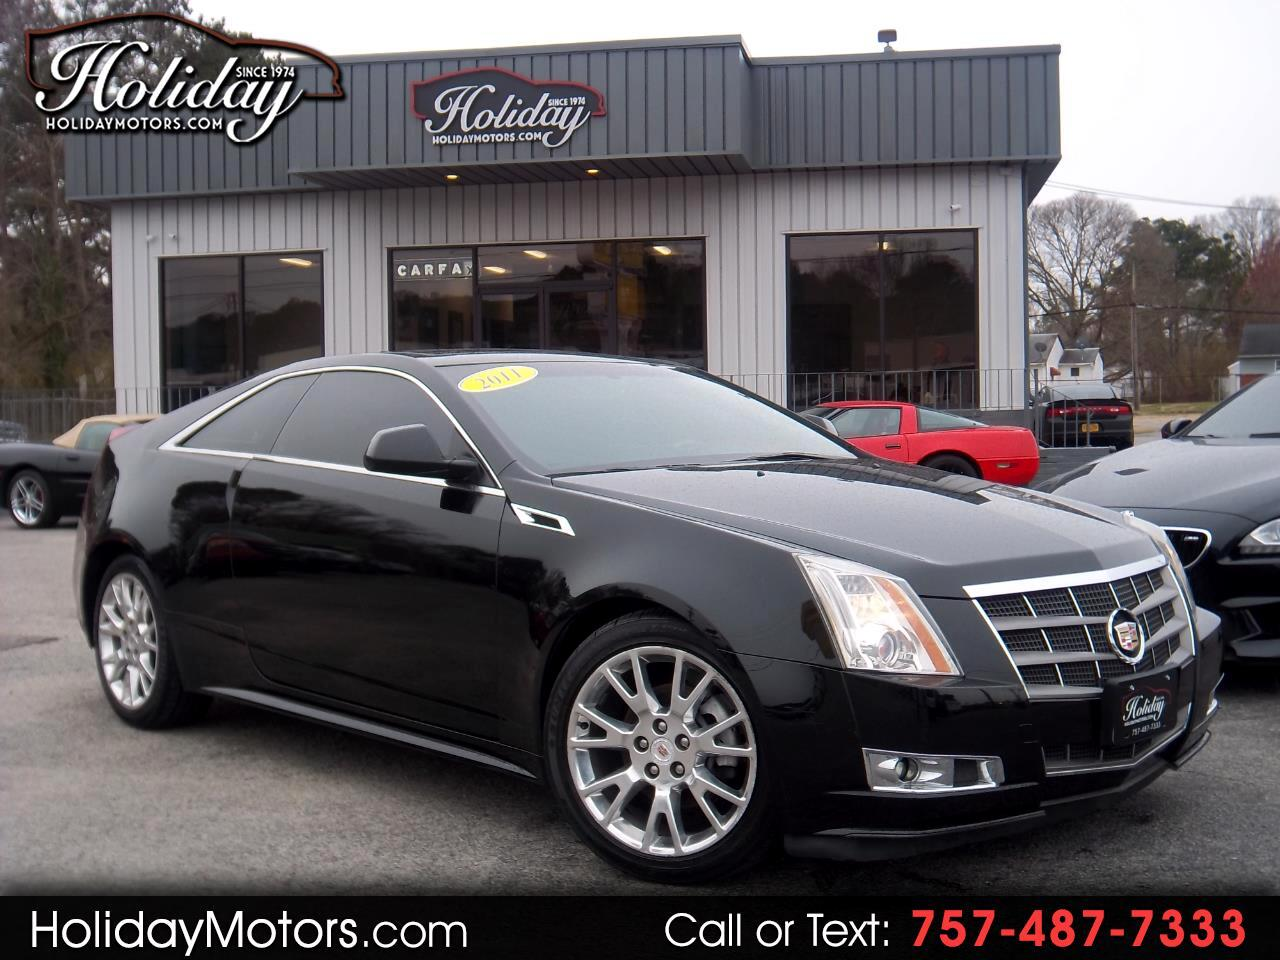 2011 Cadillac CTS Coupe 2dr Cpe Performance AWD